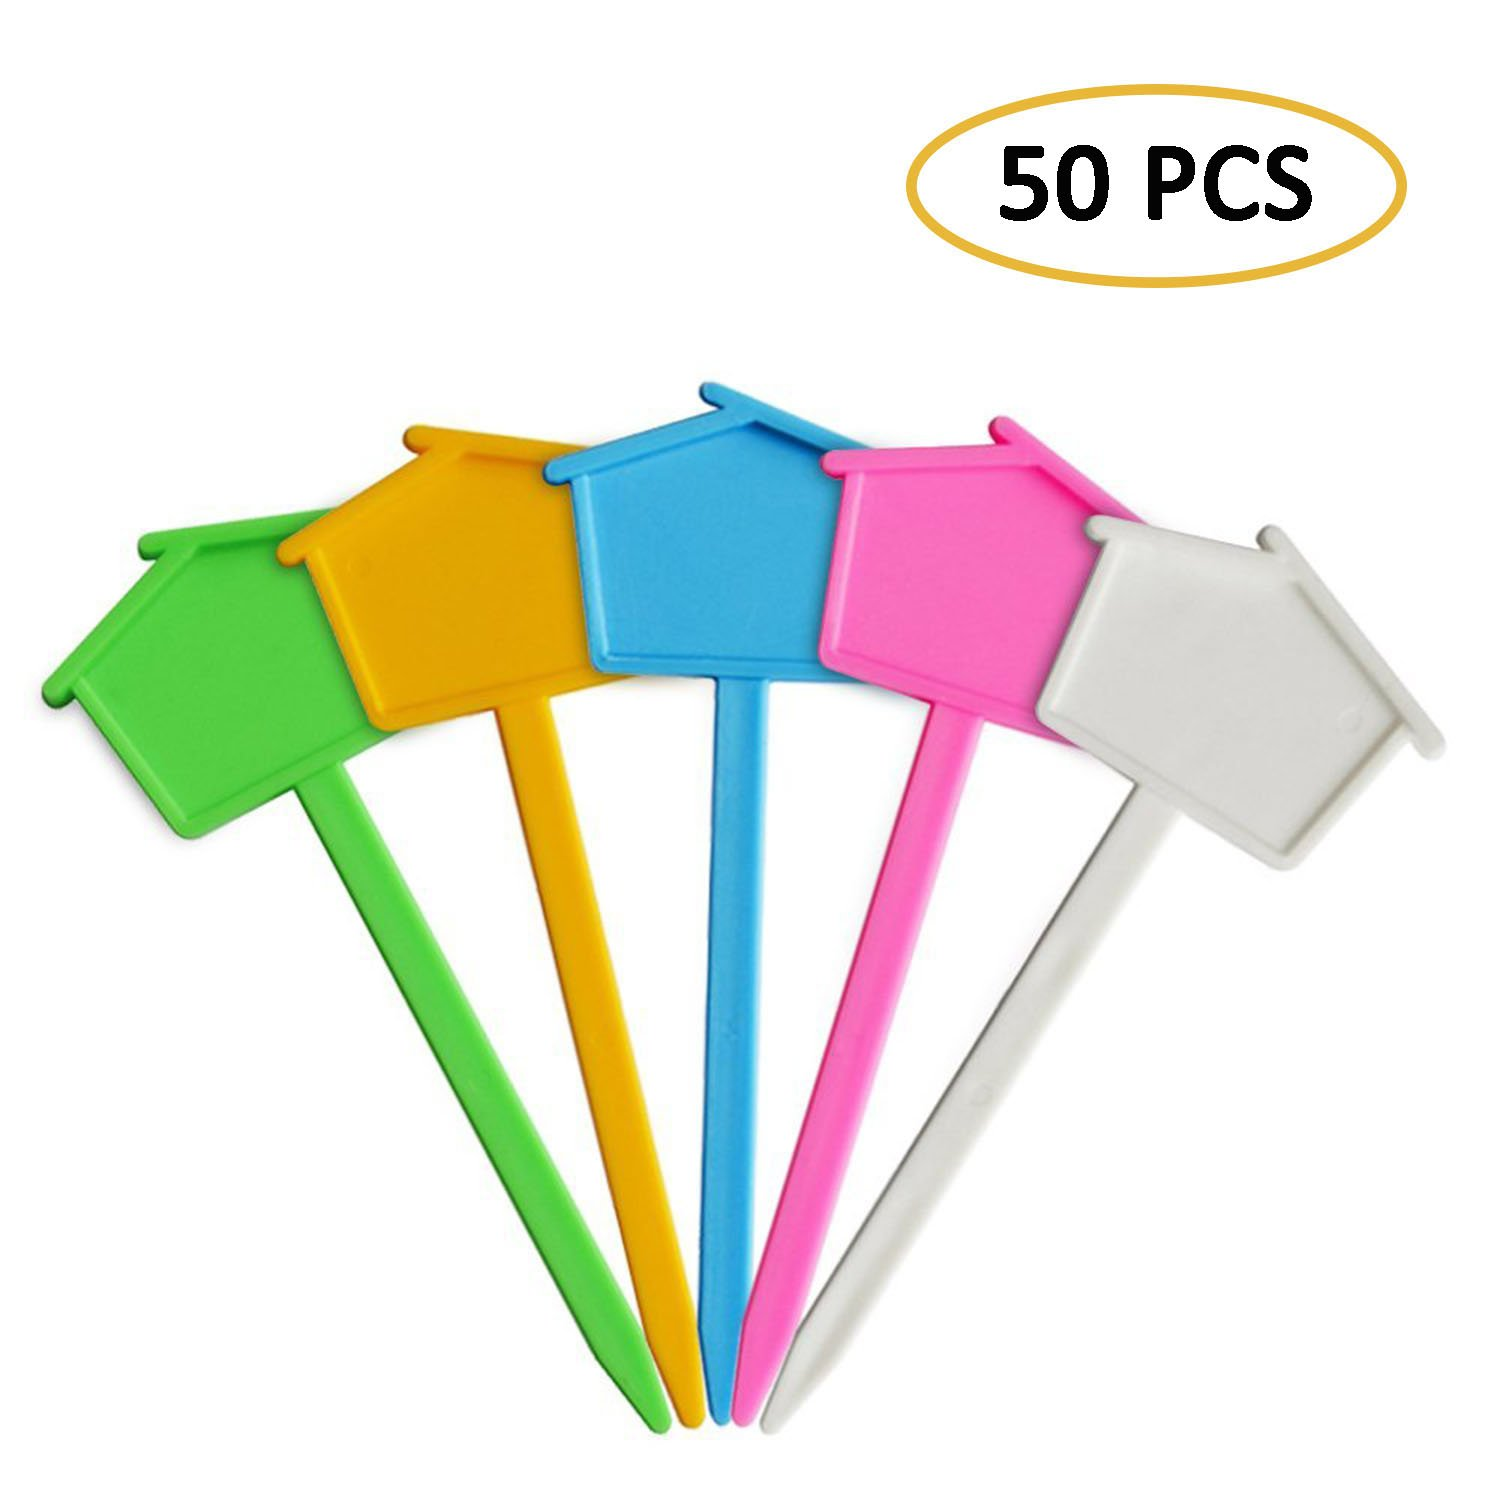 Couga Mall 50 PCS Multi-Functional Plastic Garden Labels, Cute House Design Reusable Waterproof Plant Markers Tags Stakes for Garden, Nursery and Lawn (Multicolor)